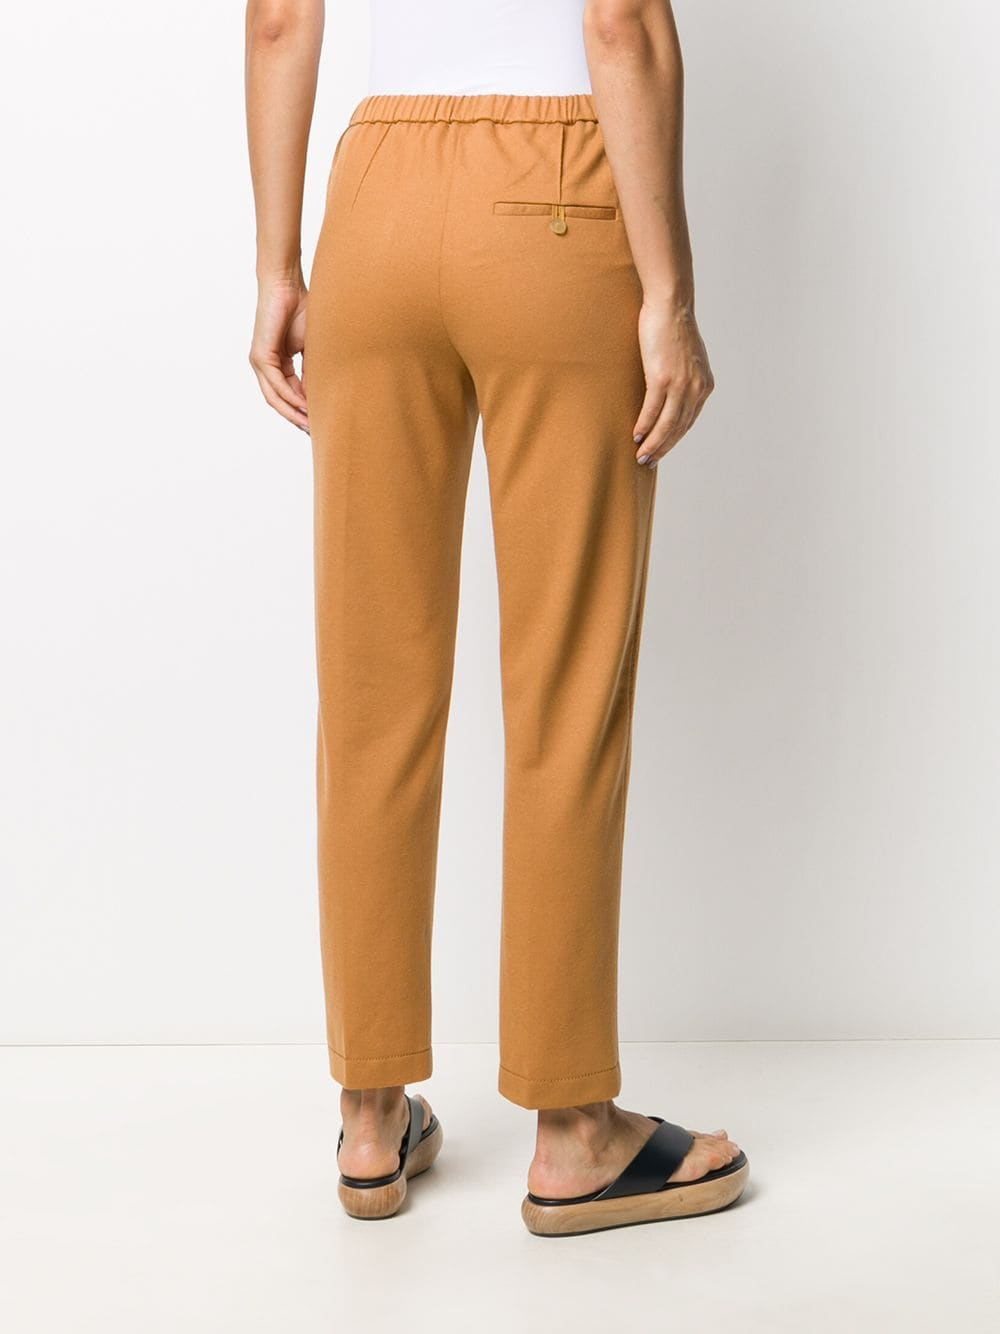 Caramel brown virgin wool/cupro elastic-waist pull-on trousers FORTE_FORTE |  | 7518CAMMELLO